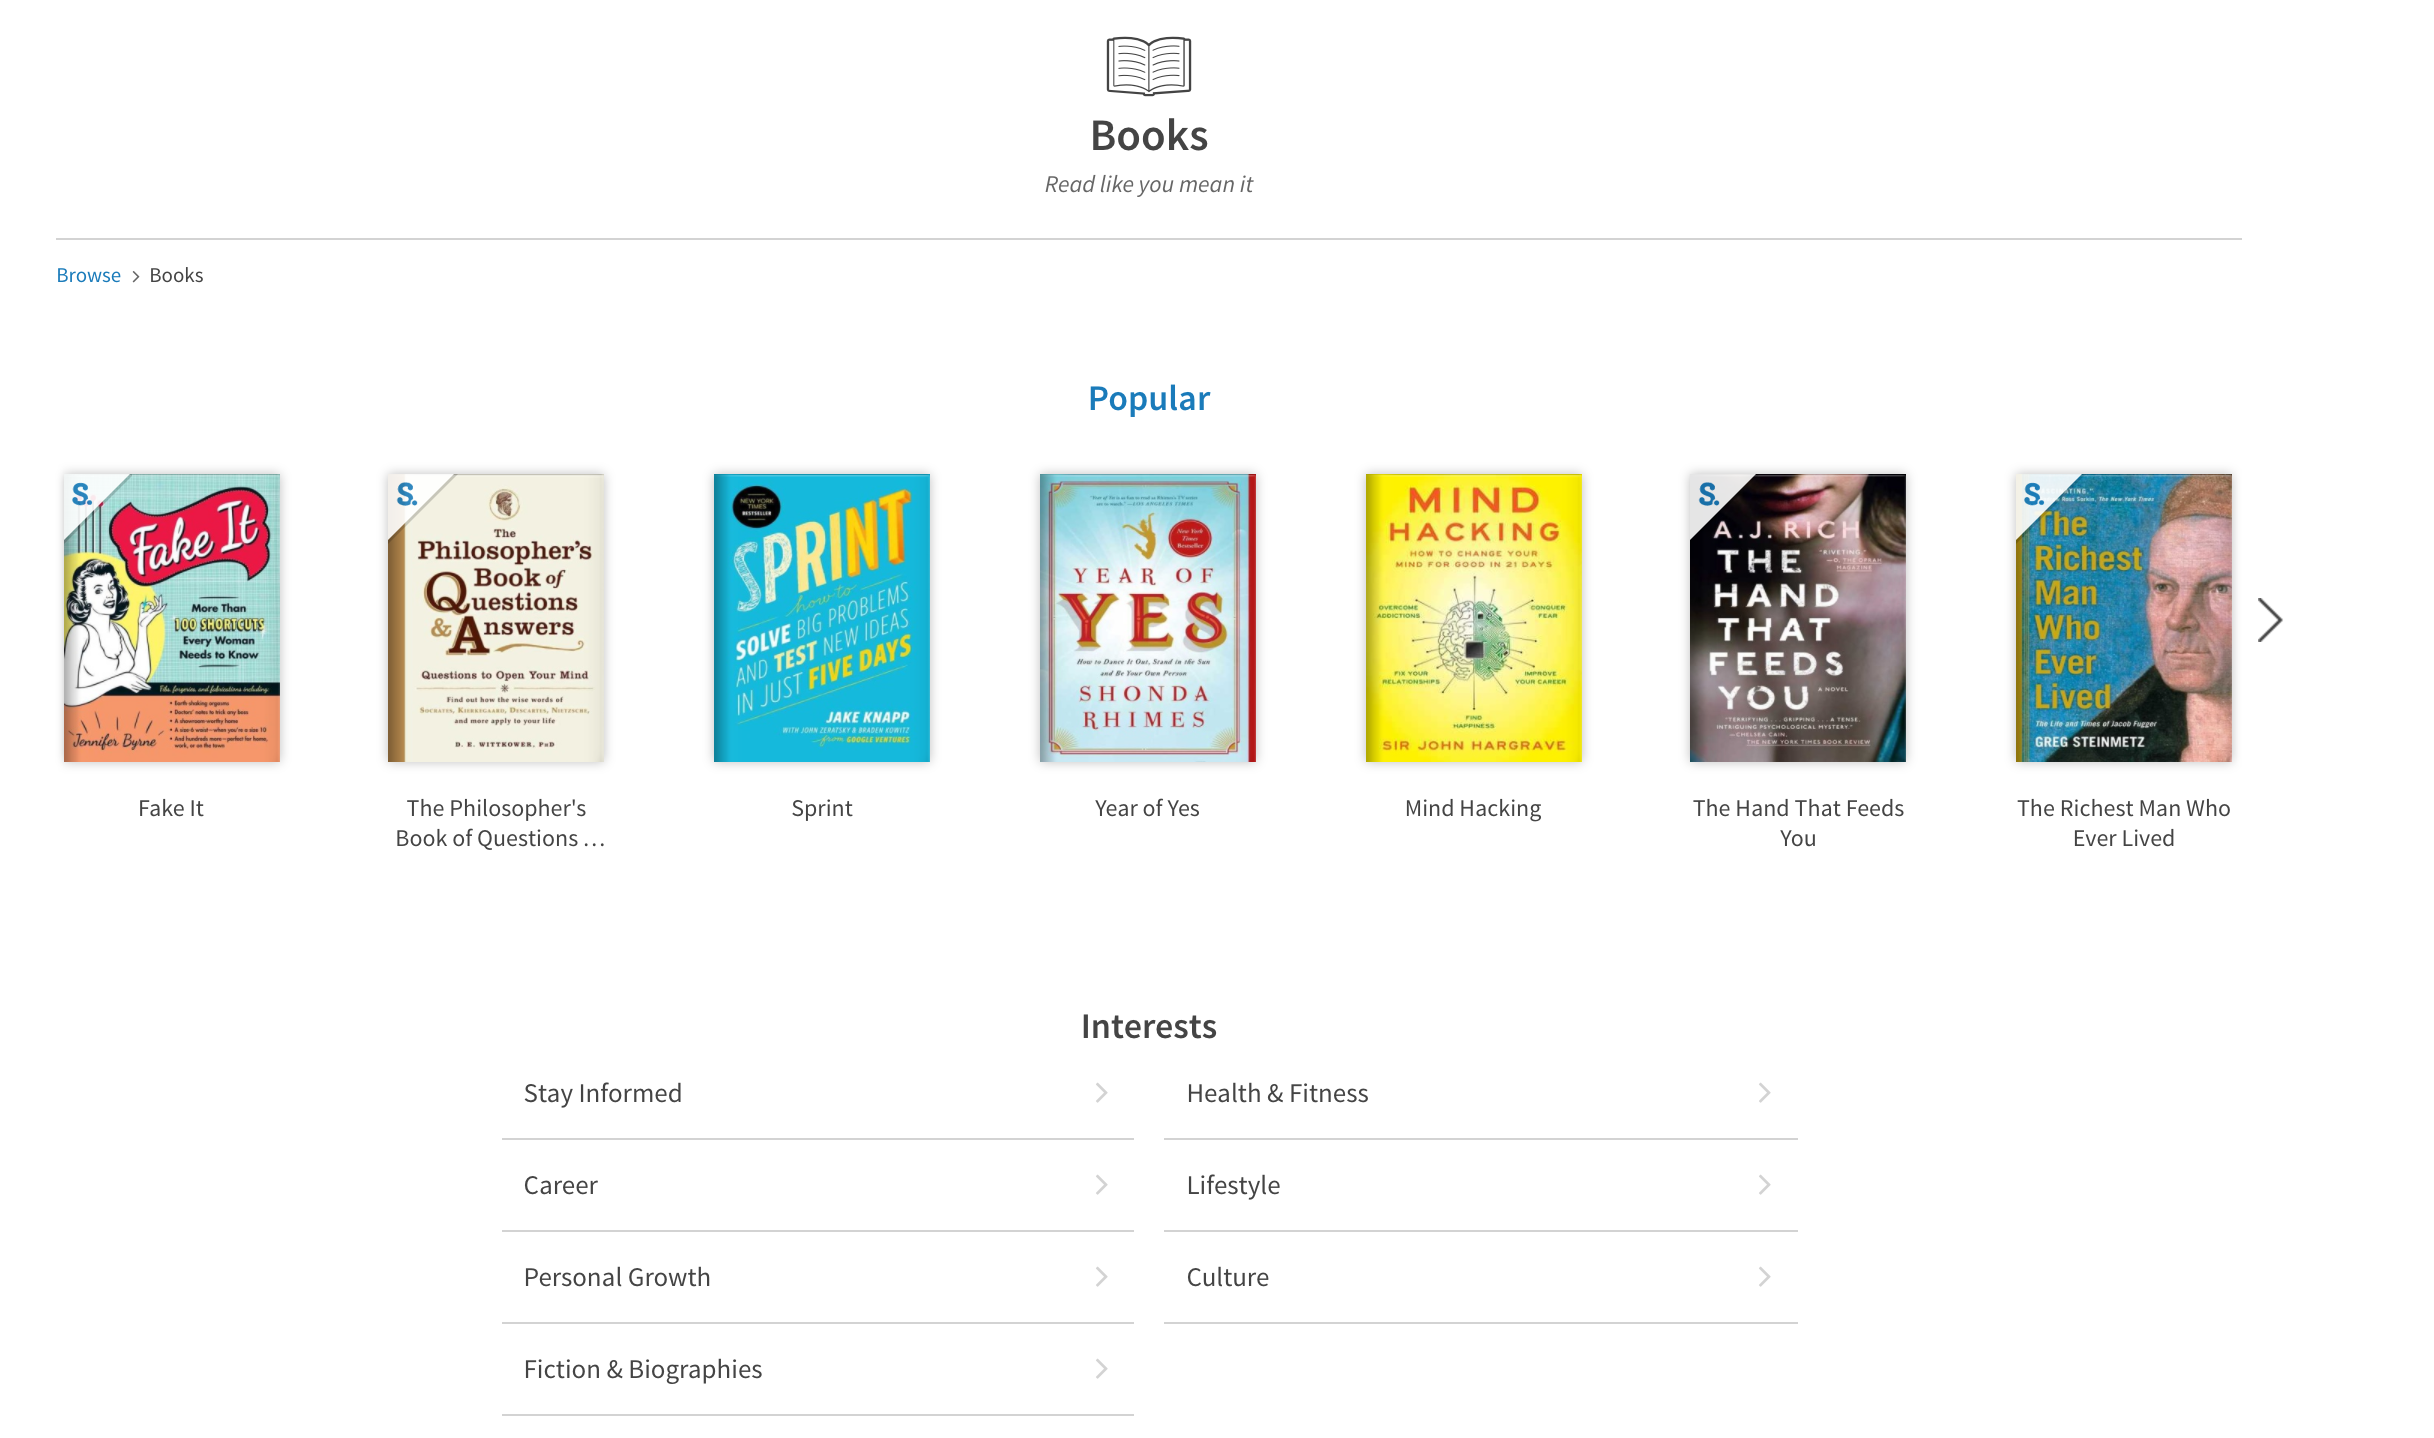 searching and browsing scribd s library scribd help center a selection of popular titles reading lists collections and can narrow your results by browsing specific interests in your preferred content type